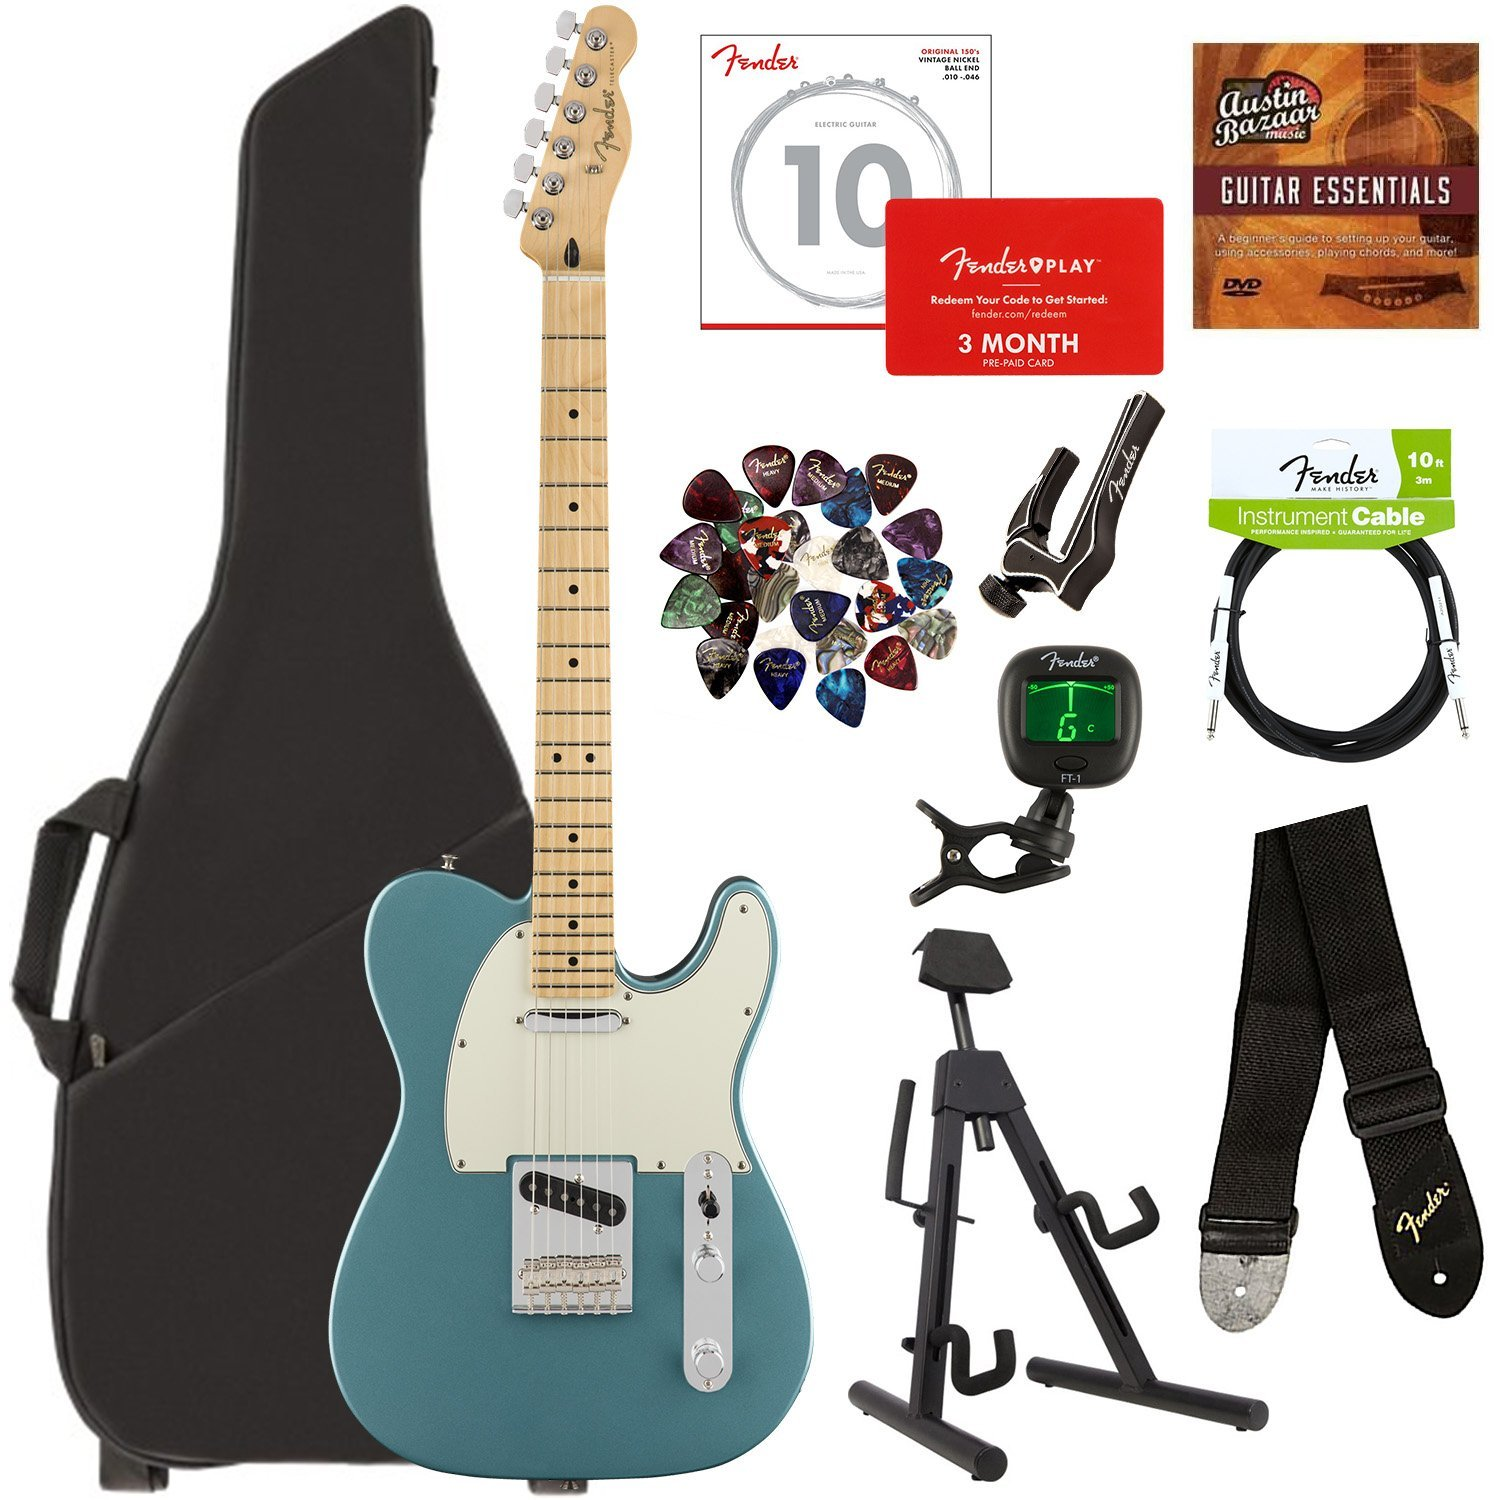 Fender Player Telecaster Maple  Tidepool Bundle with Gig Bag Stand Cable Tuner Strap Strings Picks Capo Fender Play Online Lessons and Austin Bazaar Instructional DVD